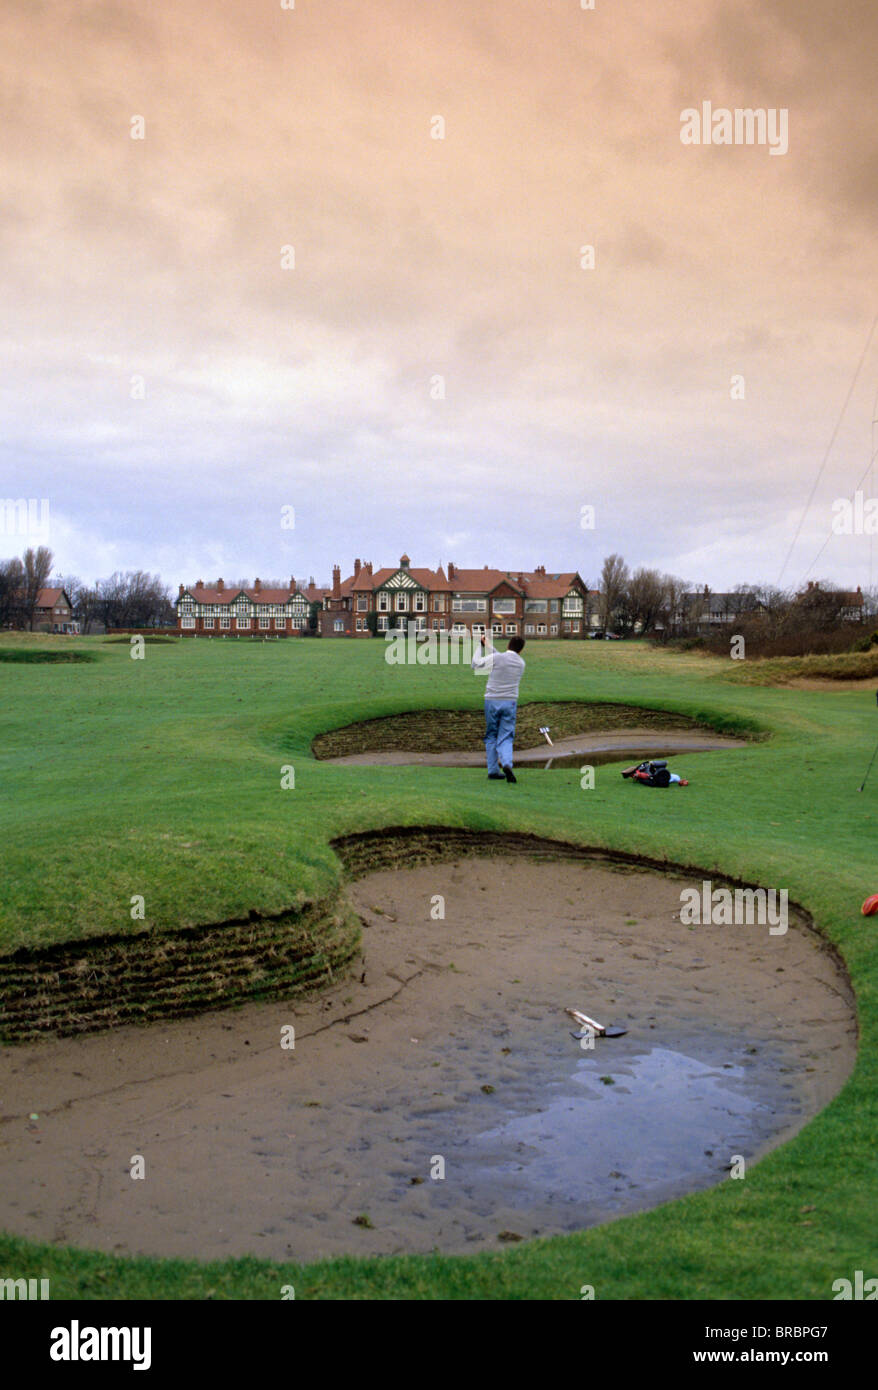 Golfer plays his approach shot from between two sodden sand bunkers - Stock Image